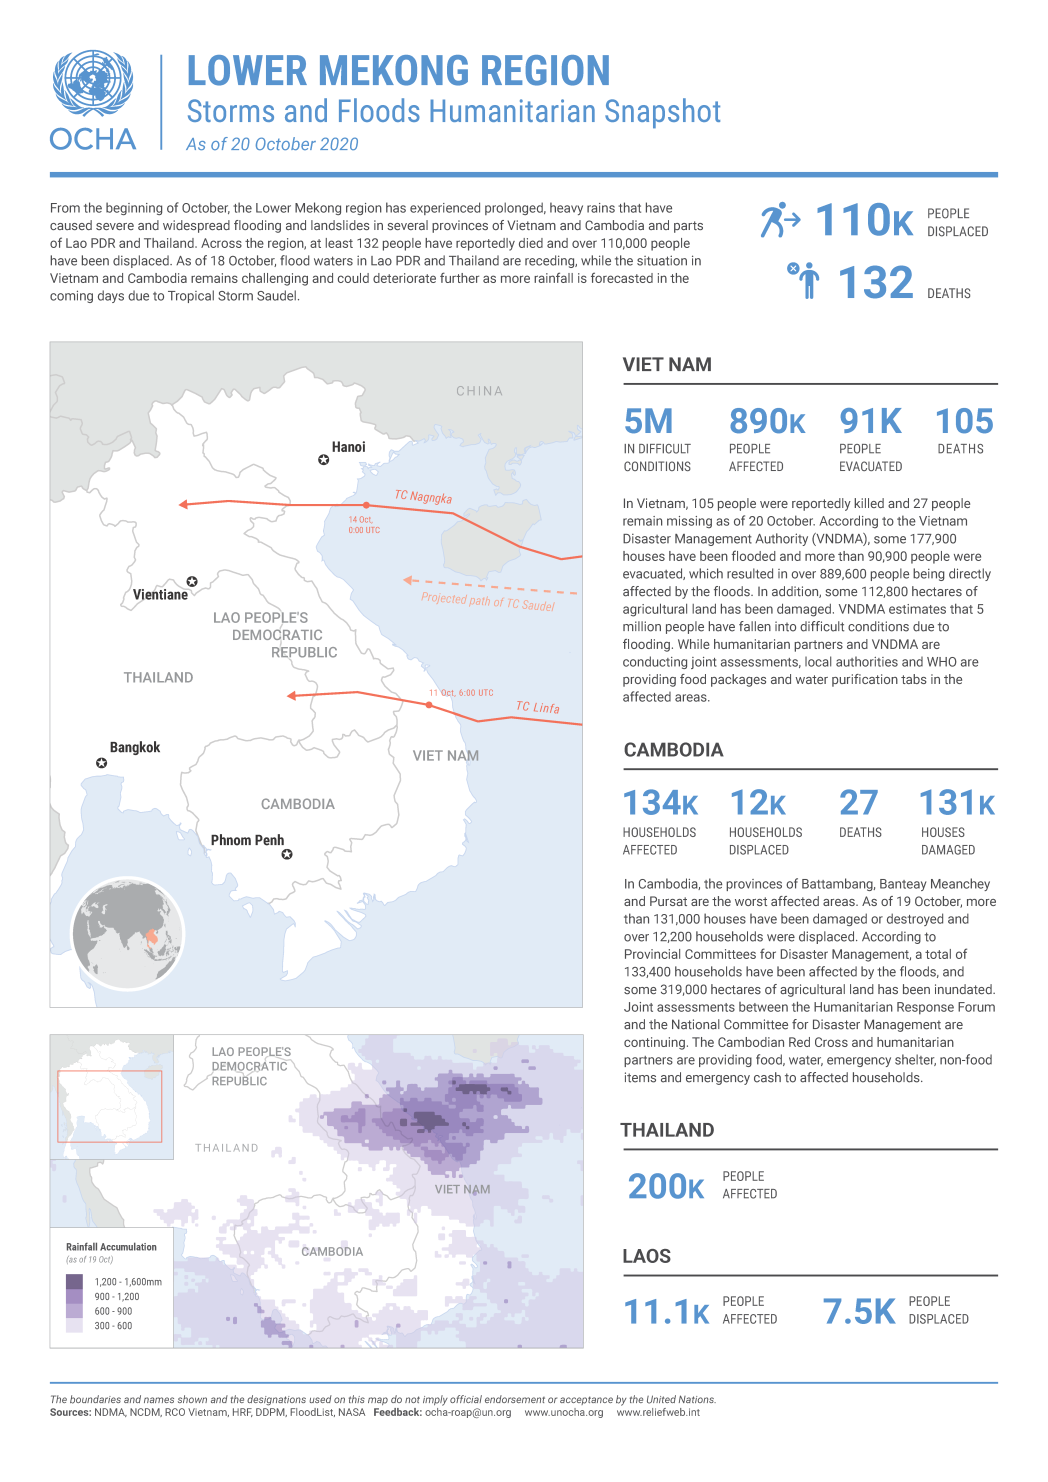 Lower Mekong Region: Storms and Floods Humanitarian Snapshot (As of 20 October 2020)